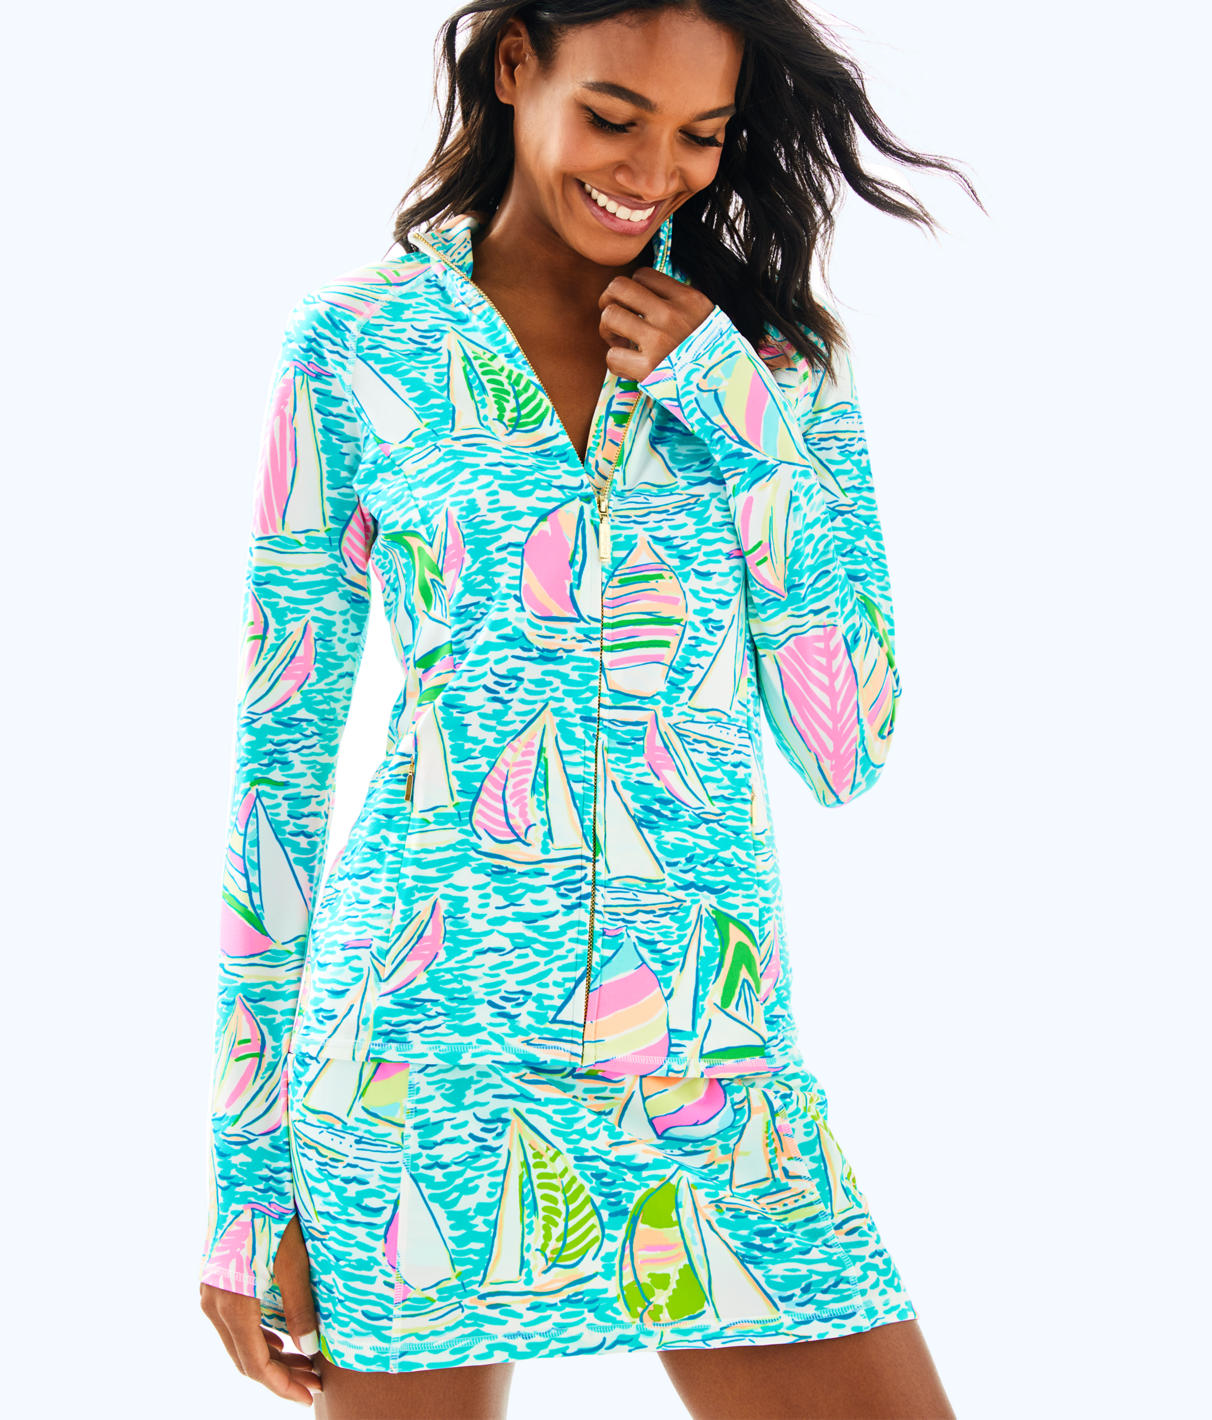 Lilly Pulitzer Lilly Pulitzer Womens Luxletic Serena Jacket